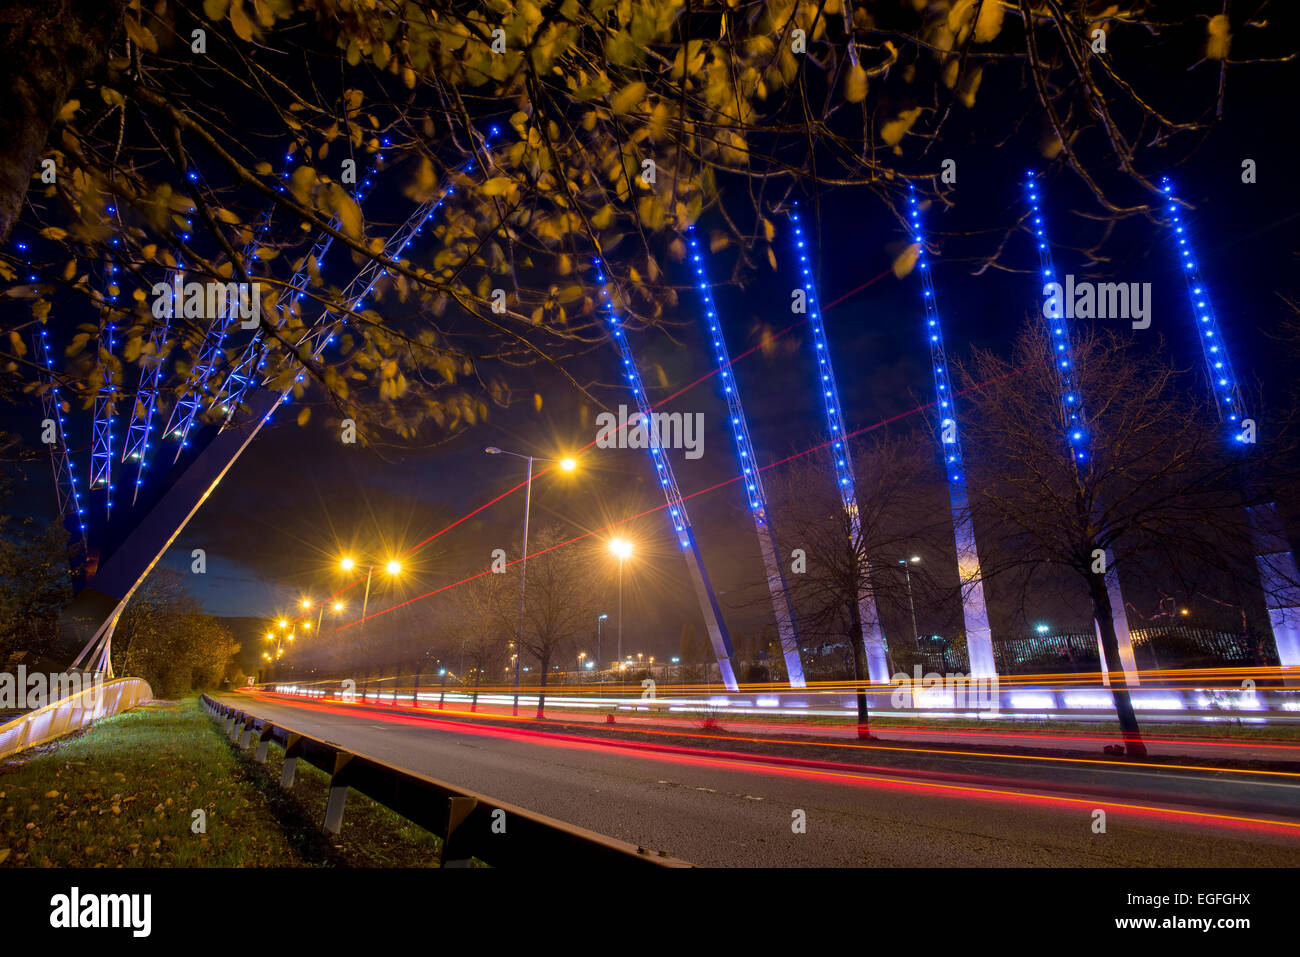 The Mersey Wave lighting display at the entrance to Liverpool's southern border at Speke. Stock Photo